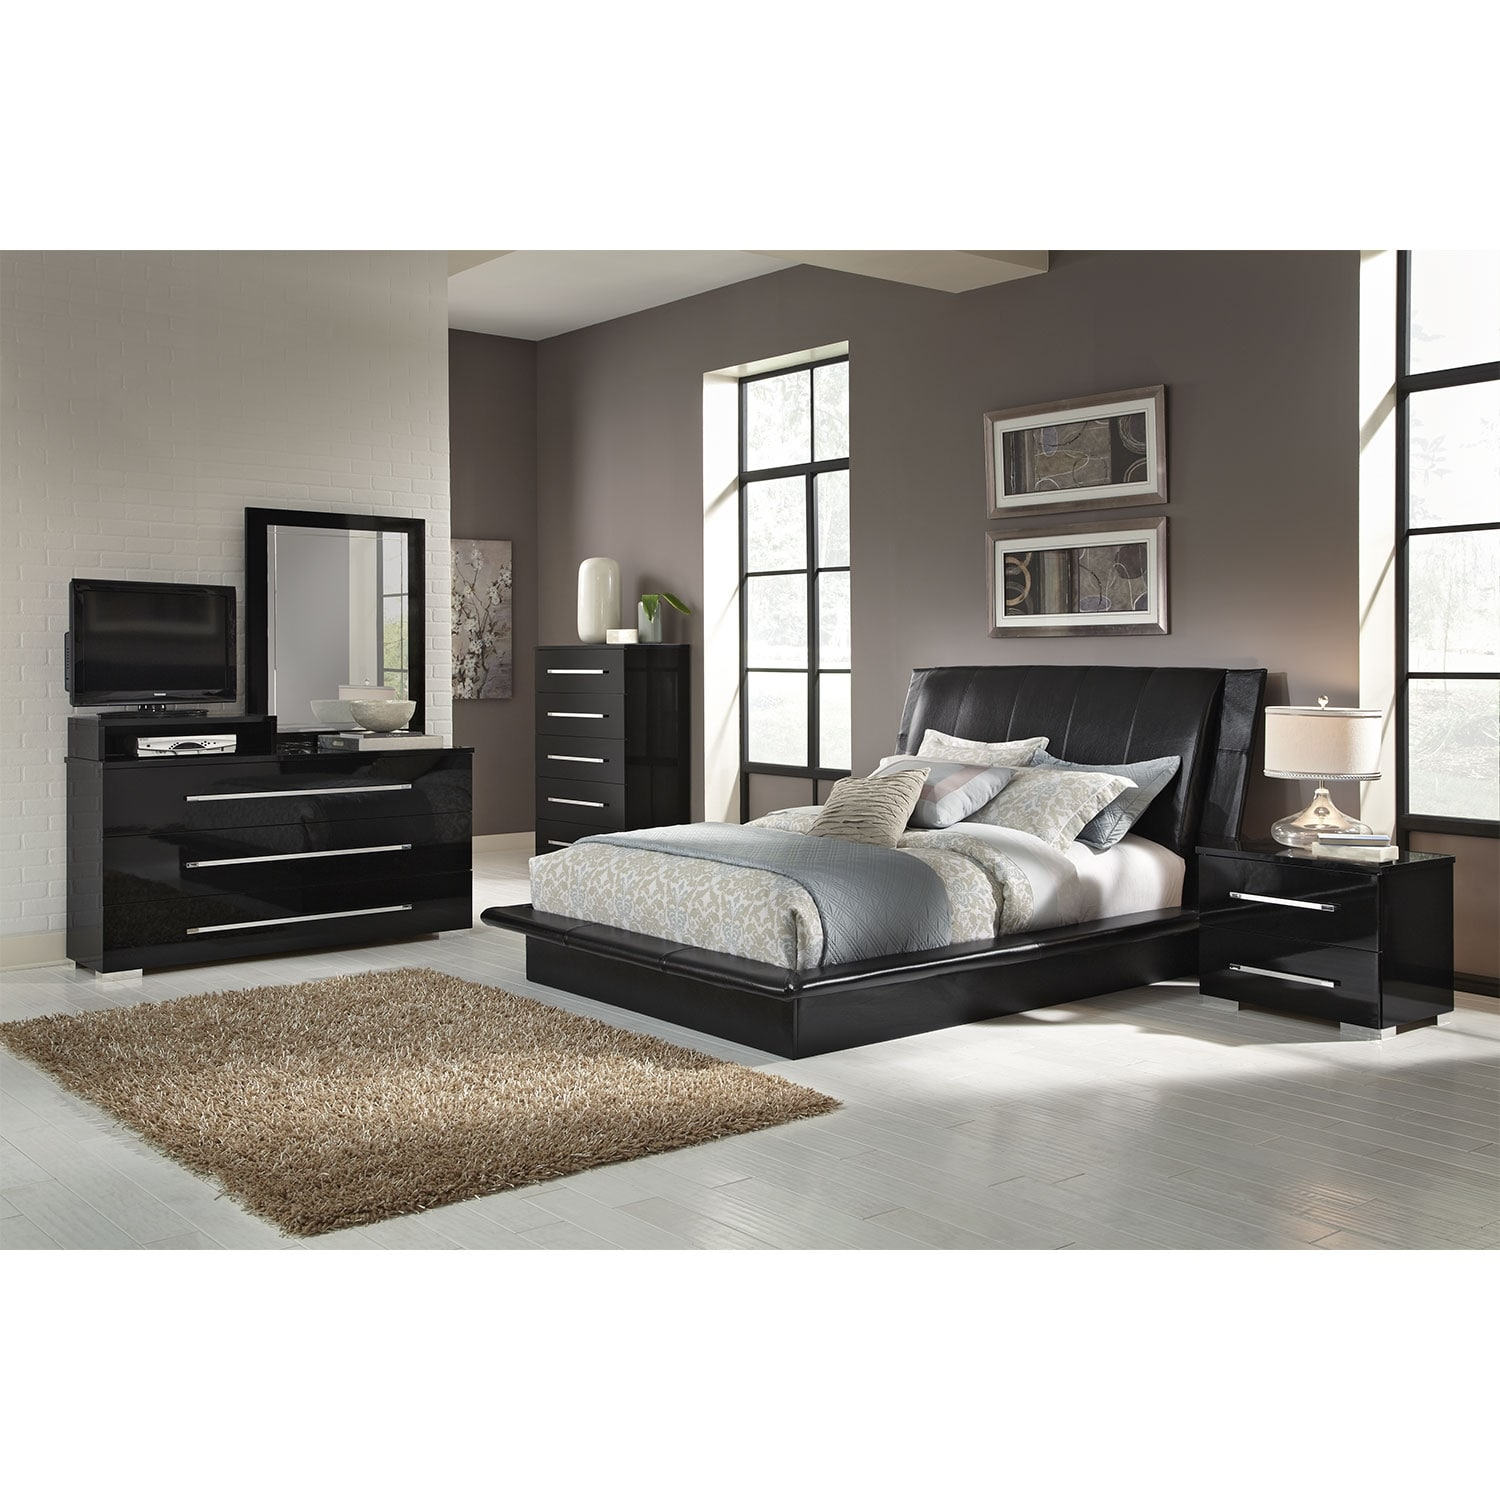 Dimora 7 Piece King Upholstered Bedroom Set With Media Dresser Black Amer